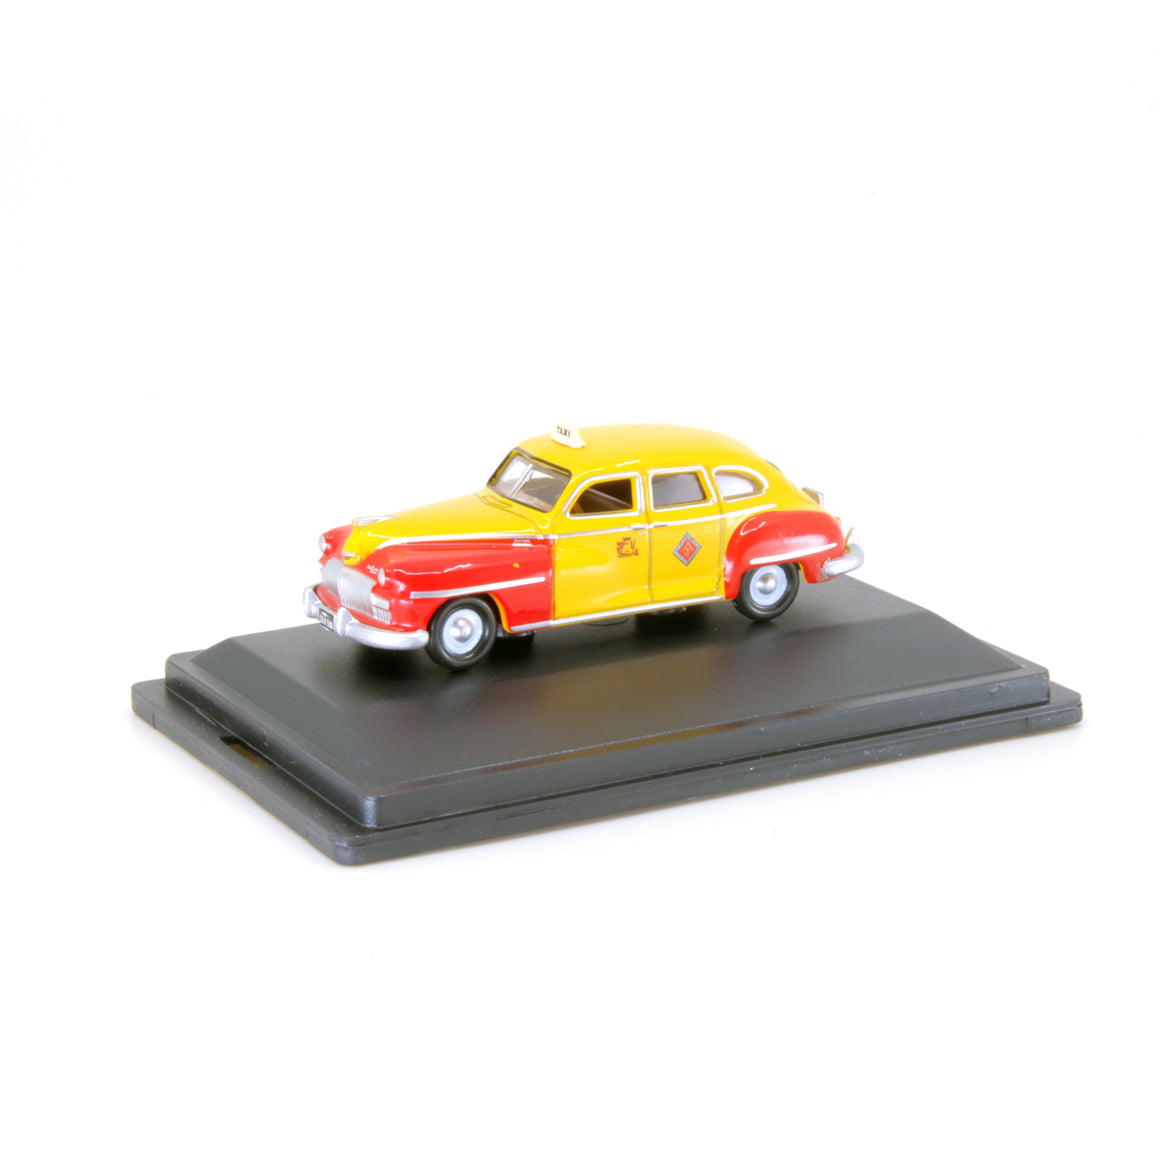 HO Scale: 1946-1948 Desoto Suburban Sedan - San Francisco Taxi